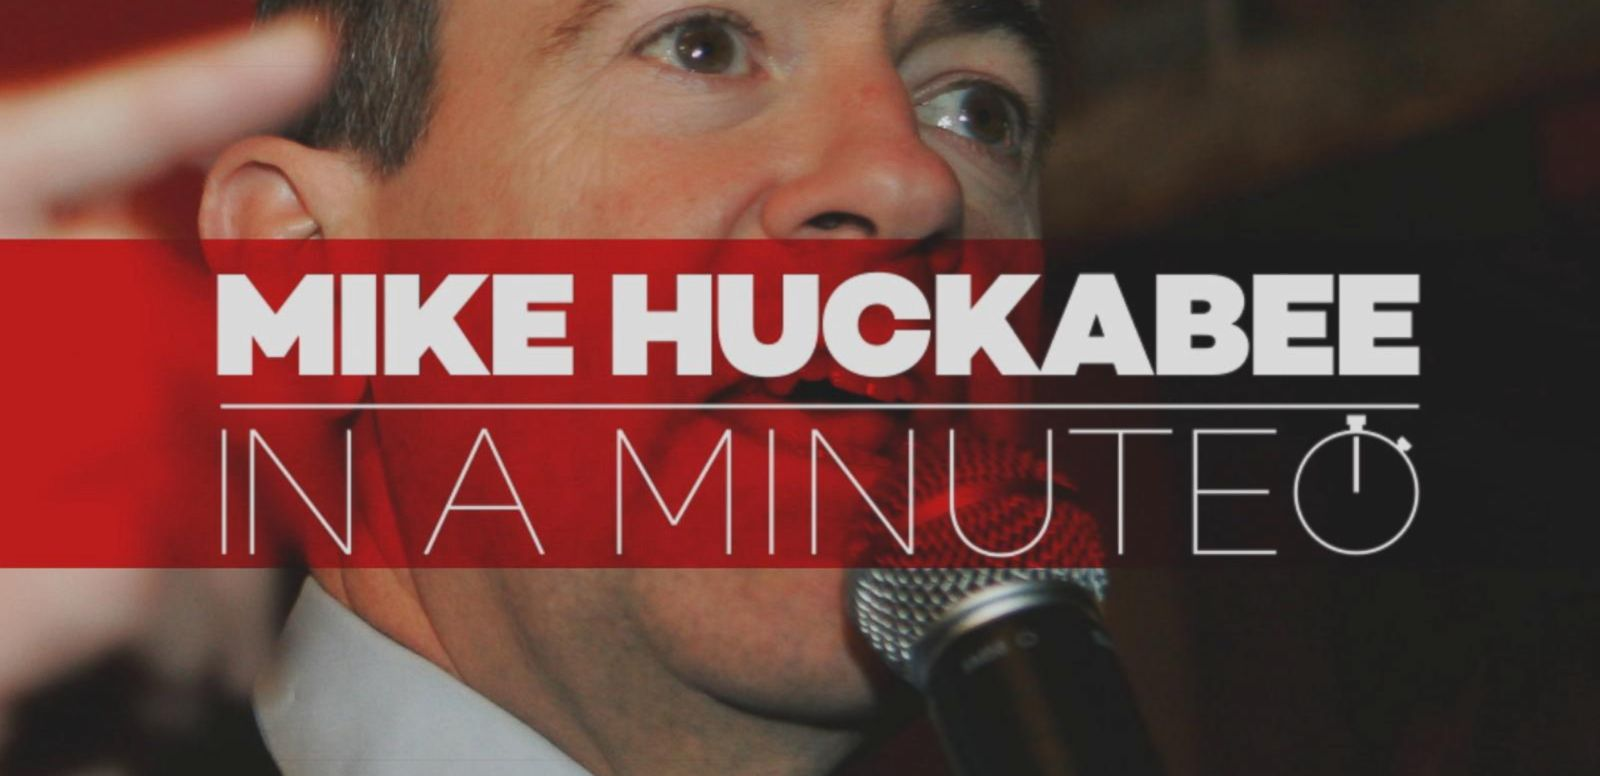 VIDEO: Mike Huckabee In A Minute